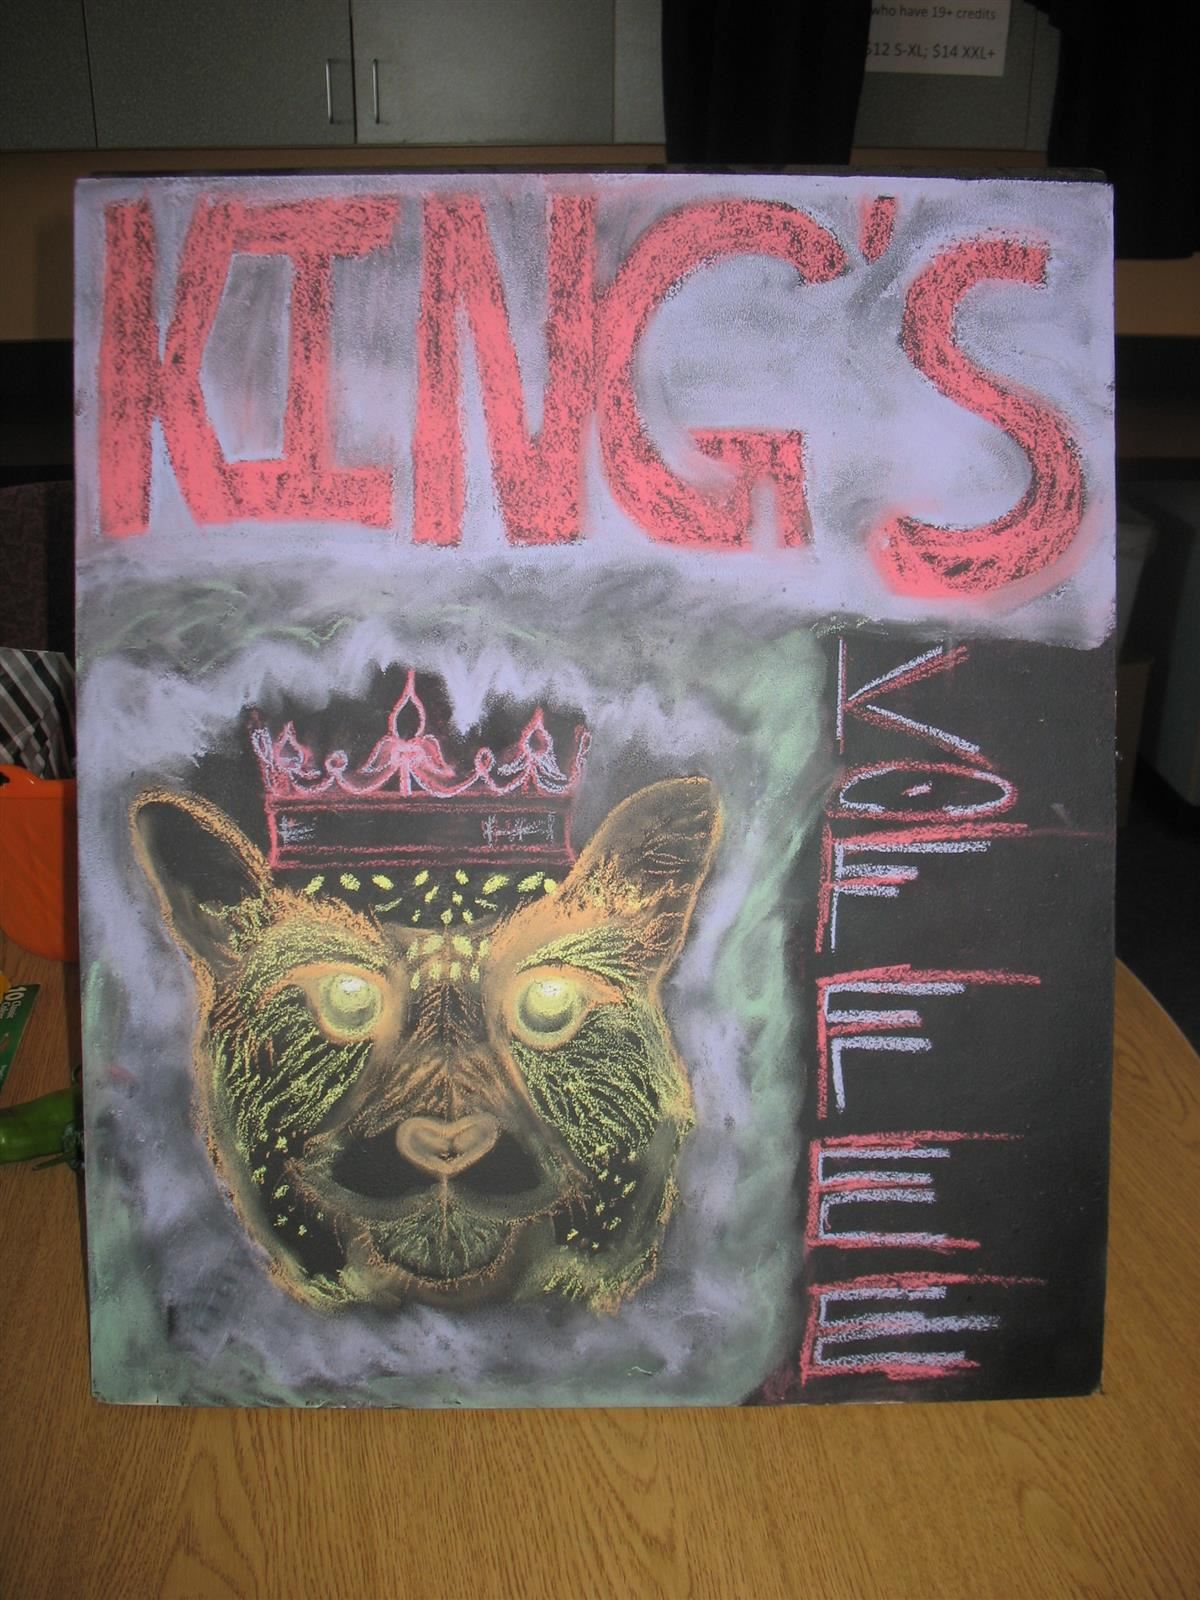 King's Coffee Signage with Logo